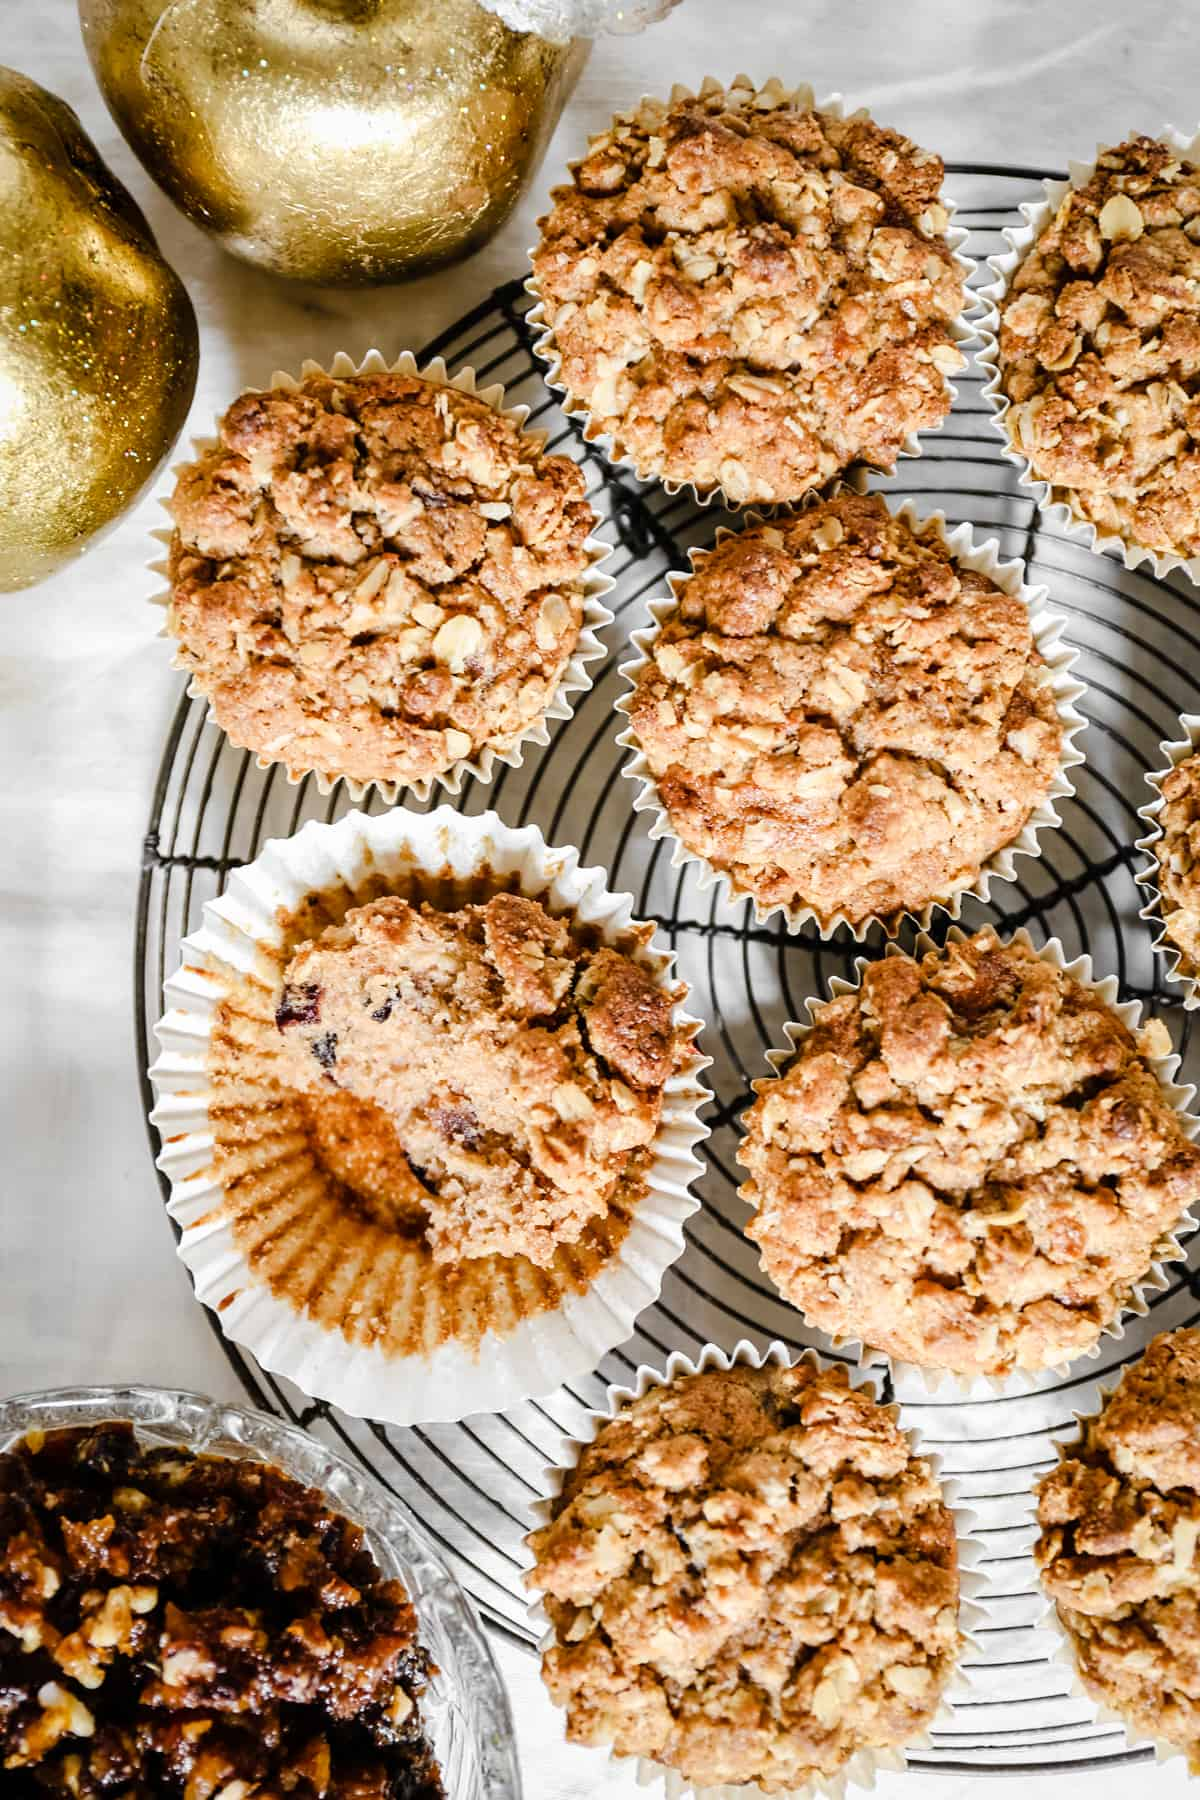 These gluten-free Christmas Morning Mince Pie Muffins are exactly what you should be treating your family to Christmas morning. They are light, fluffy, moist and full of Christmas spice and cheer.